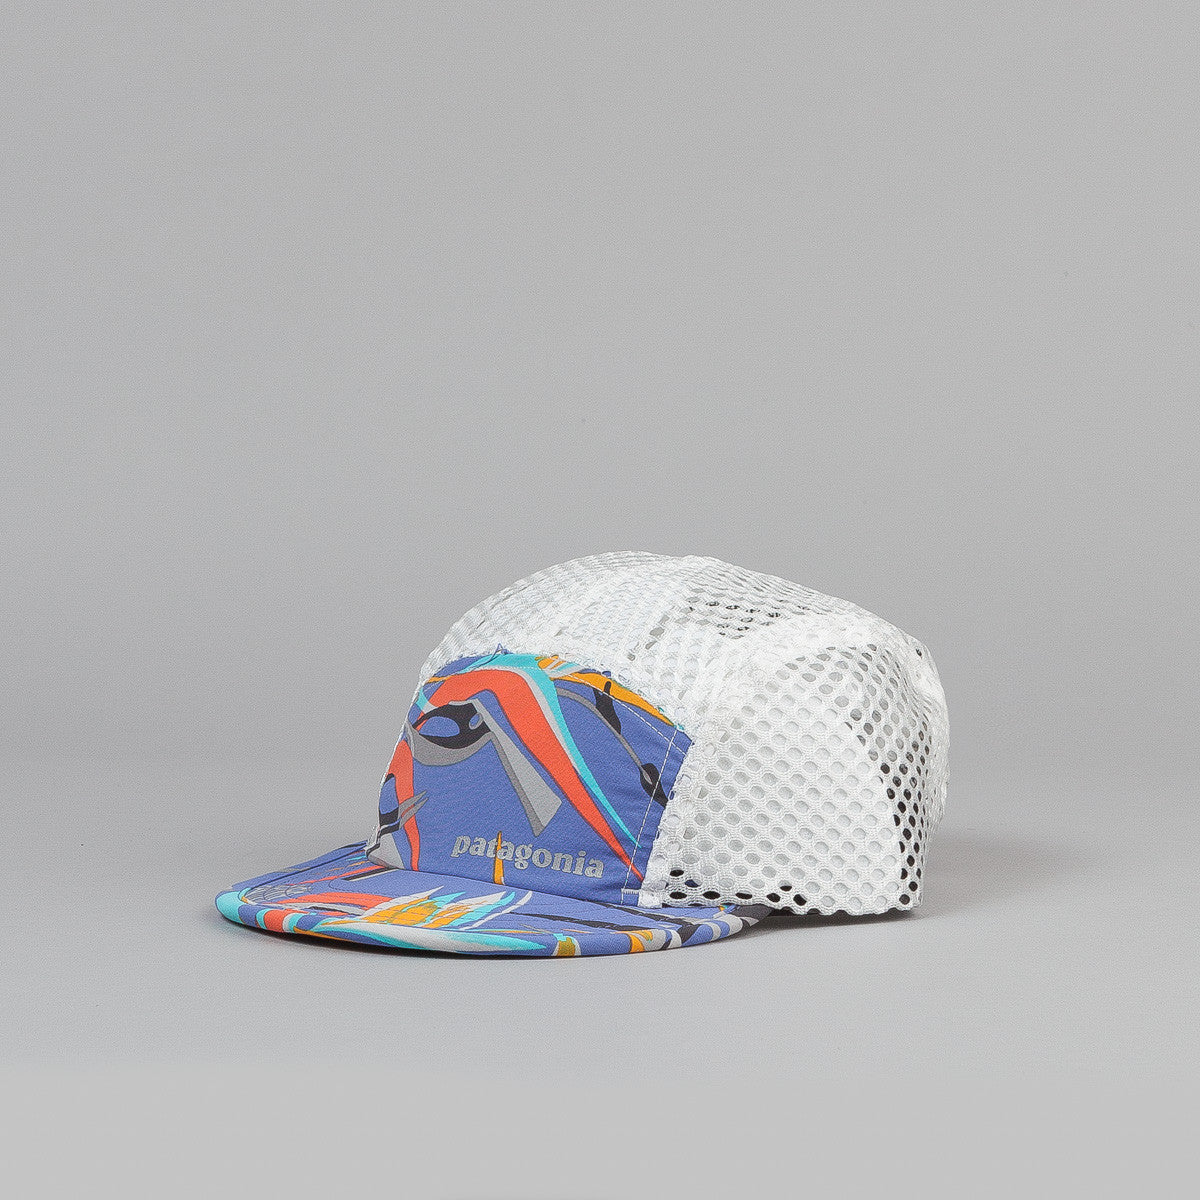 Patagonia Duckbill Cap - Piton Paradise : Violet Blue